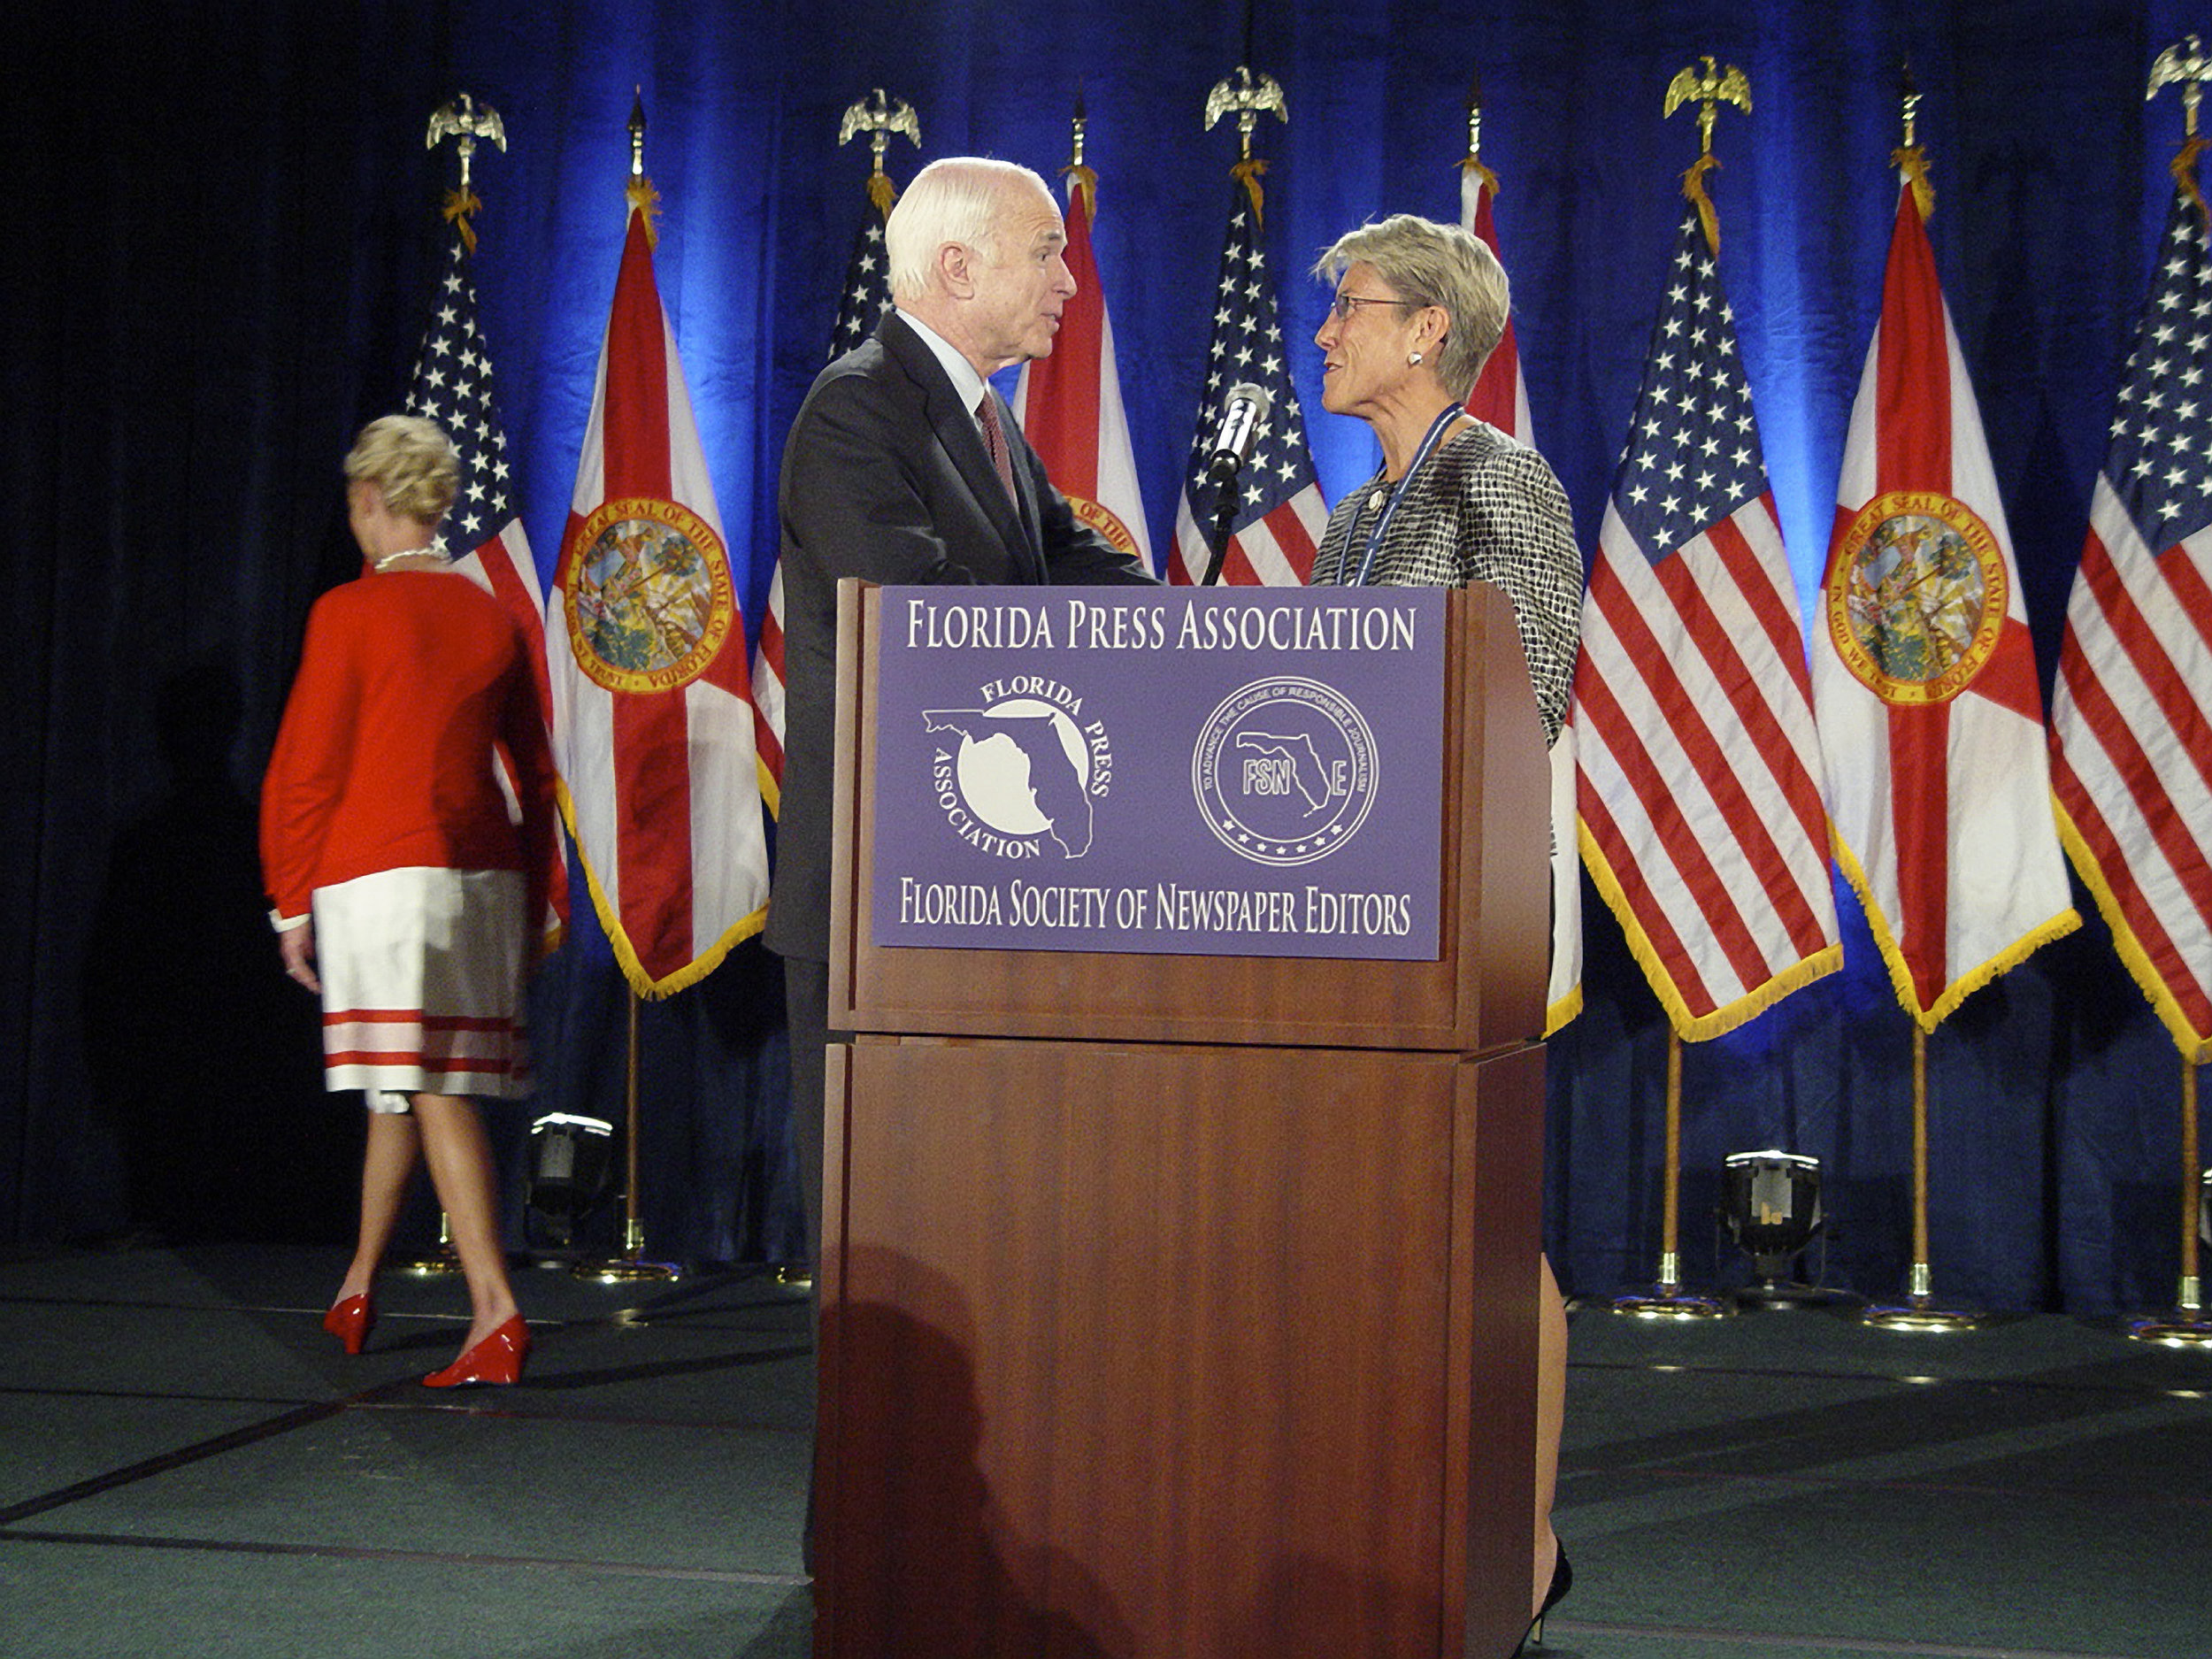 Marty Petty and John McCain FL Press Association 2008 (c) Mark Petty